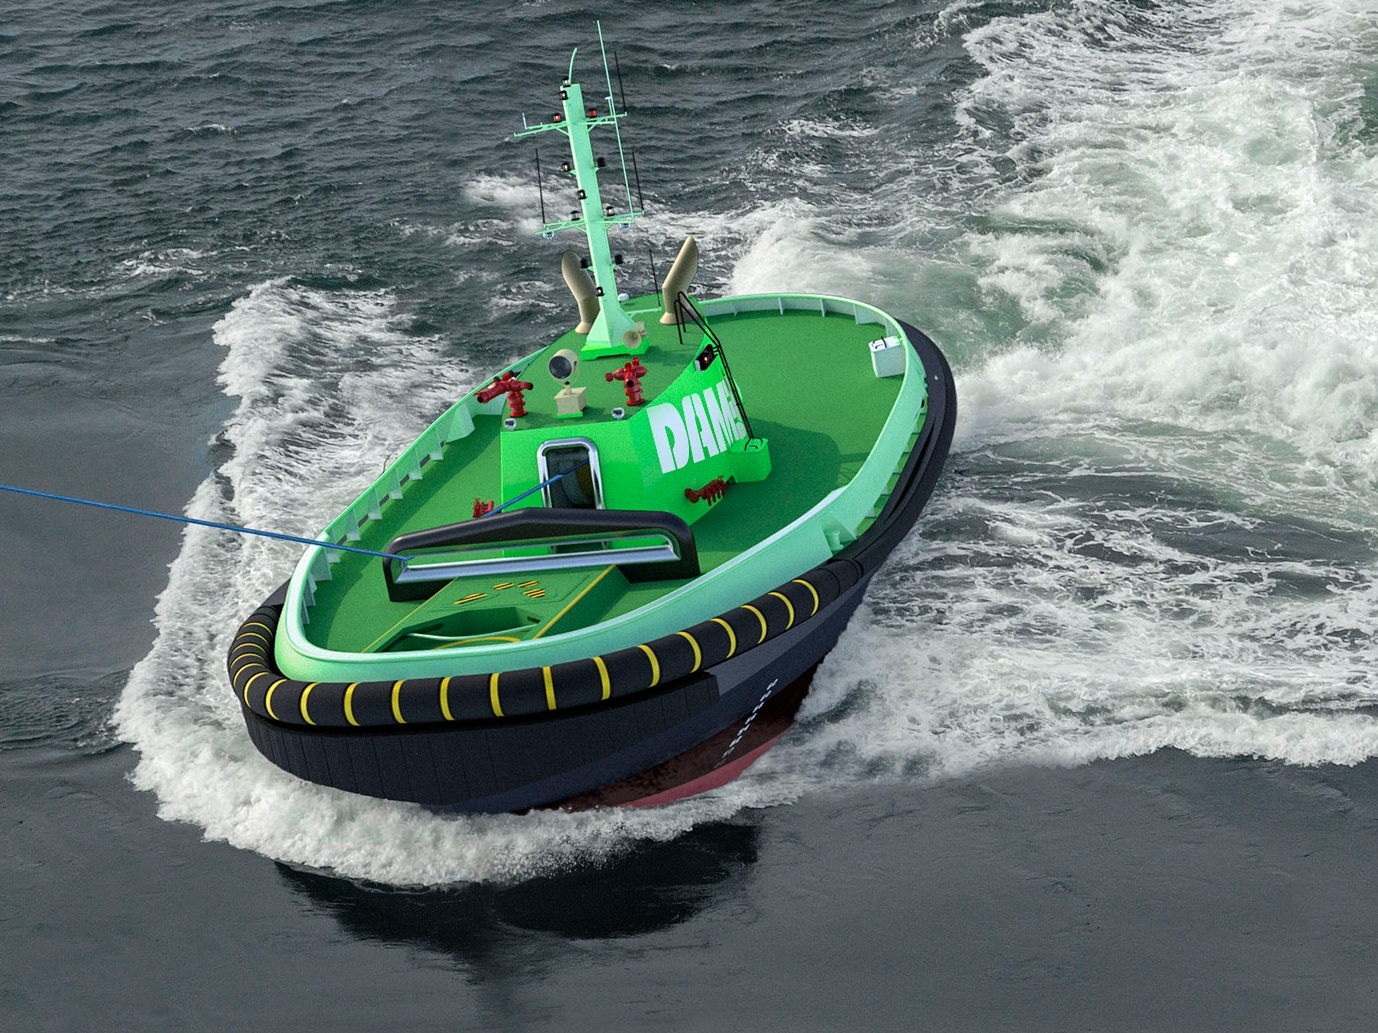 Damen Onbemand AMU 2513 Artist Impression Edit Jelle